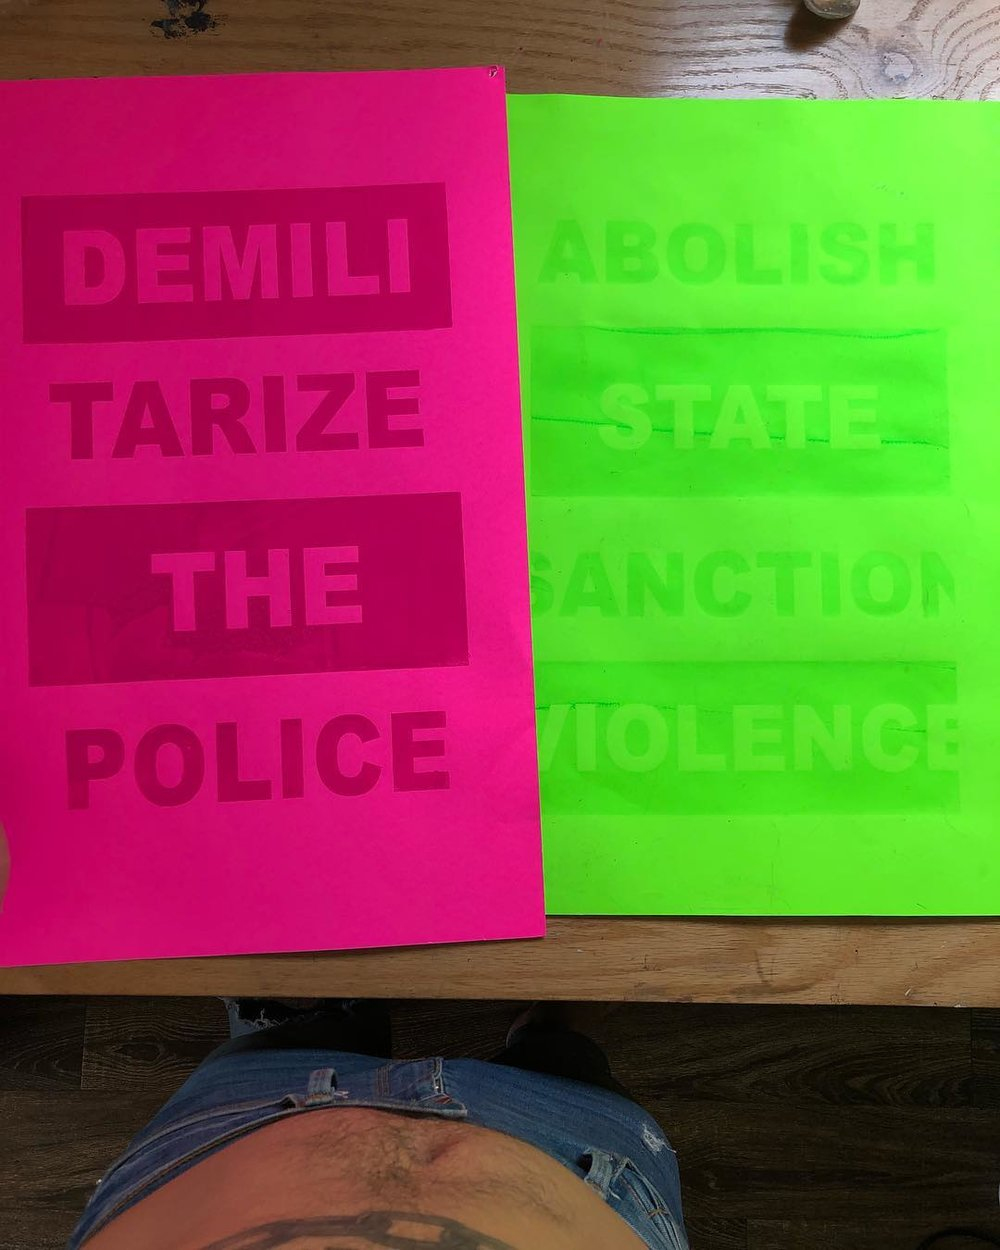 DEMATERIALIZE THE POLICE & ABOLISH STATE SANCTION VIOLENCE Screen Printed Posters - Roy Martinez